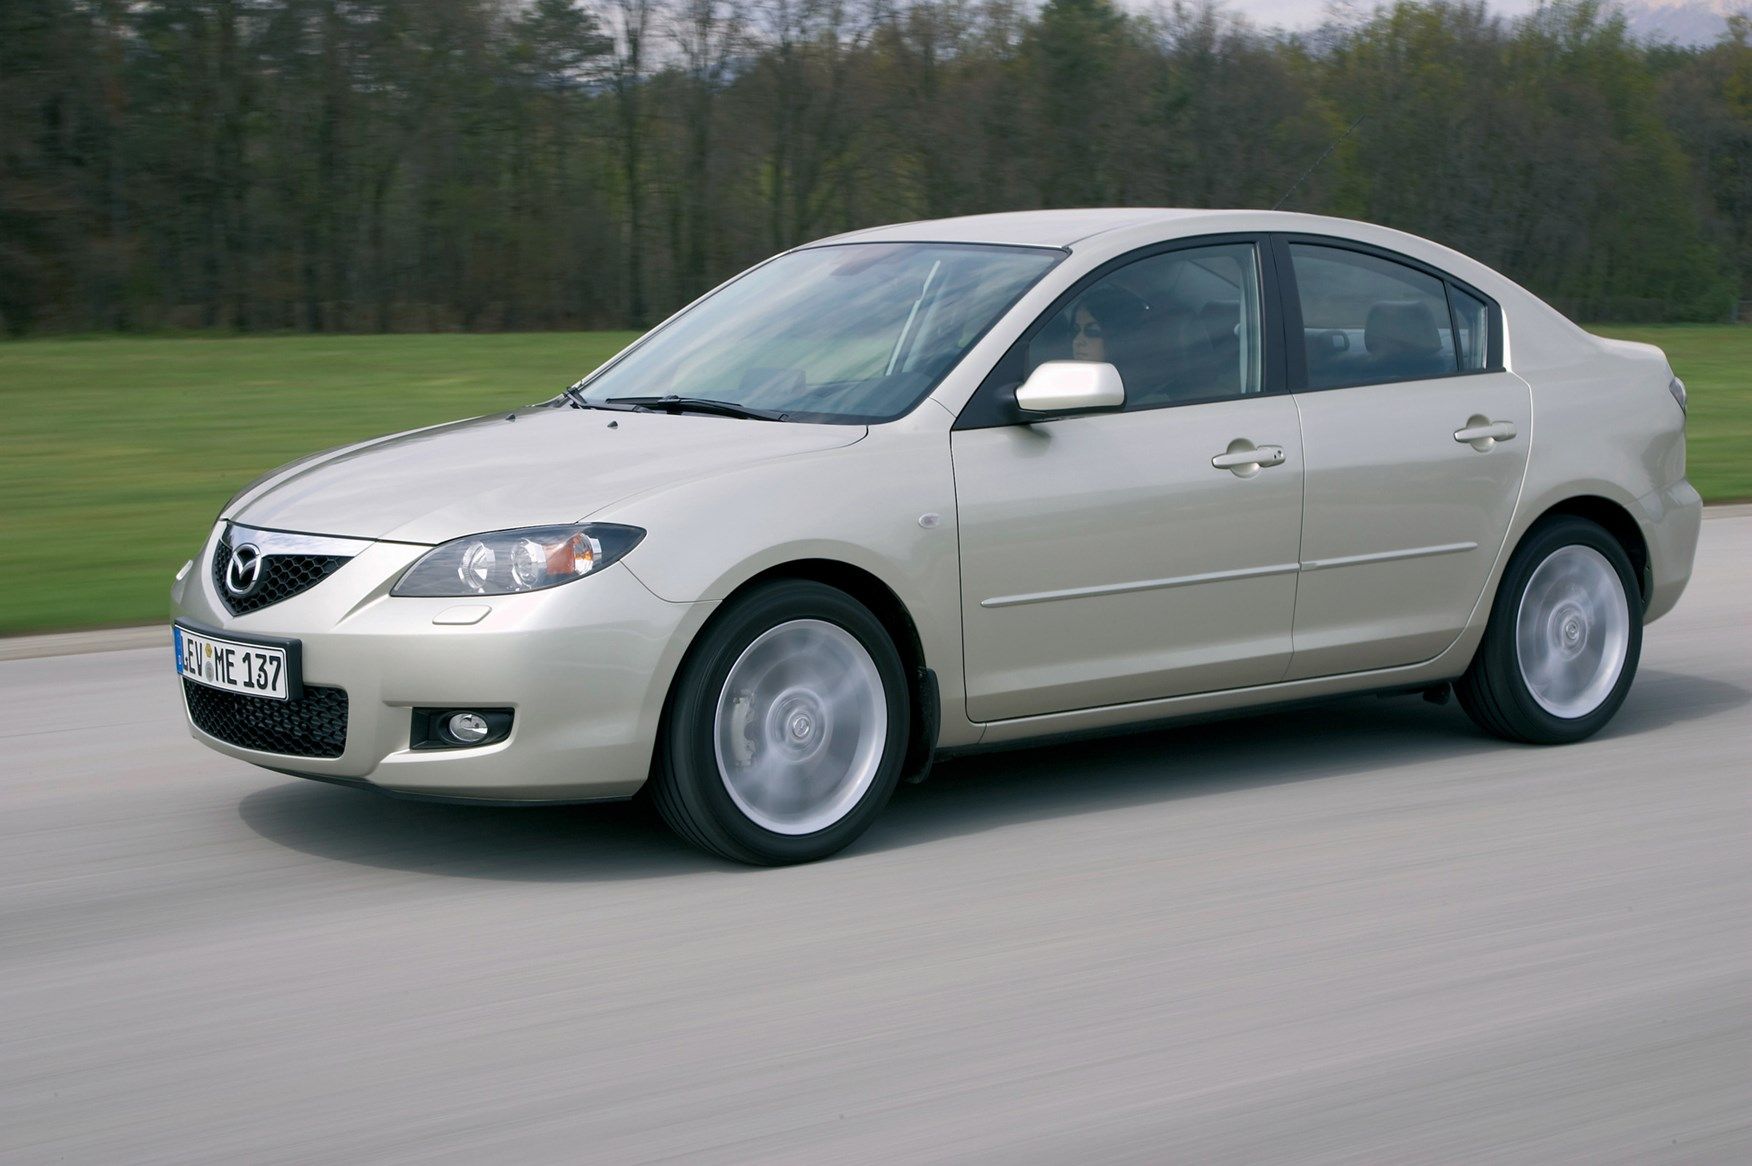 mazda 3 saloon review (2004 - 2008) | parkers